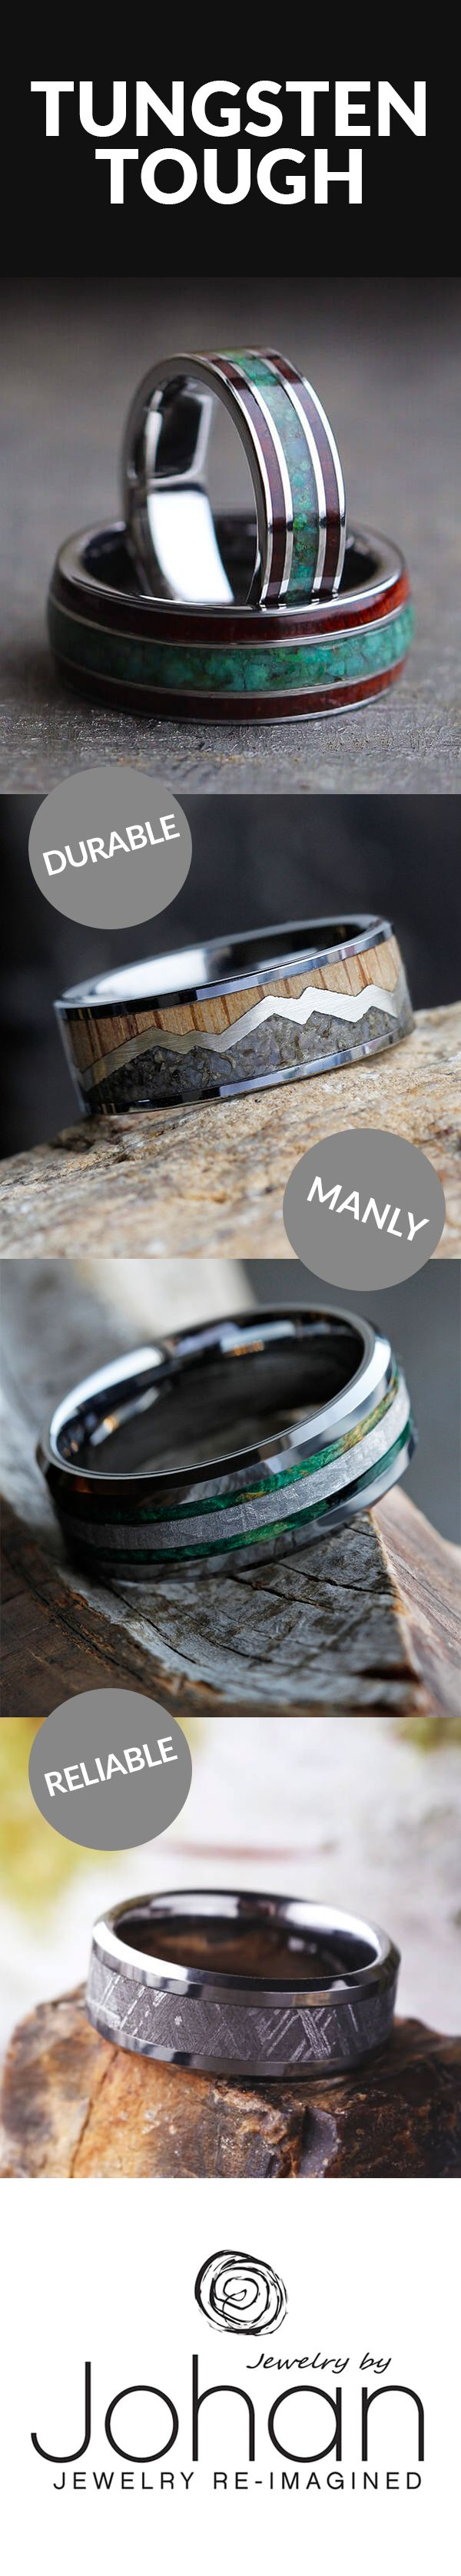 tungsten wedding bands tungsten hammered wedding band If you re looking for a Wedding Band with durability masculinity and personal